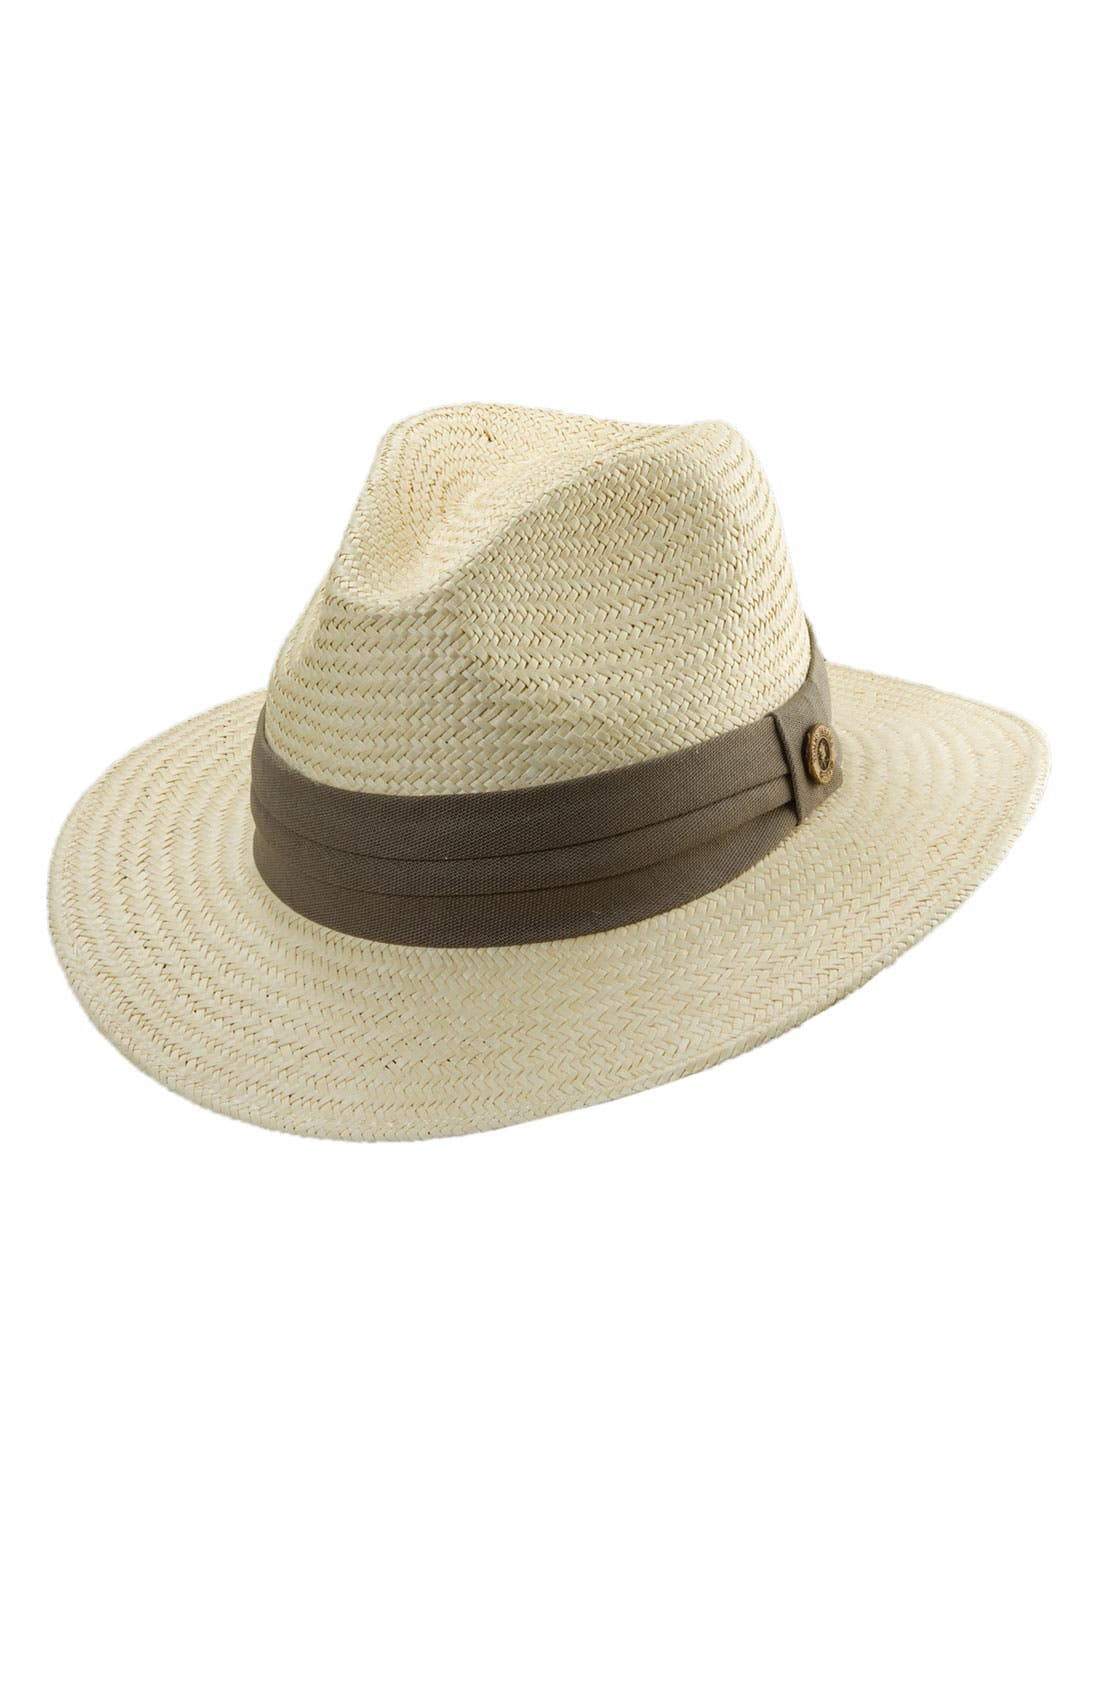 Main Image - Tommy Bahama 'Golf' Palm Fiber Fedora